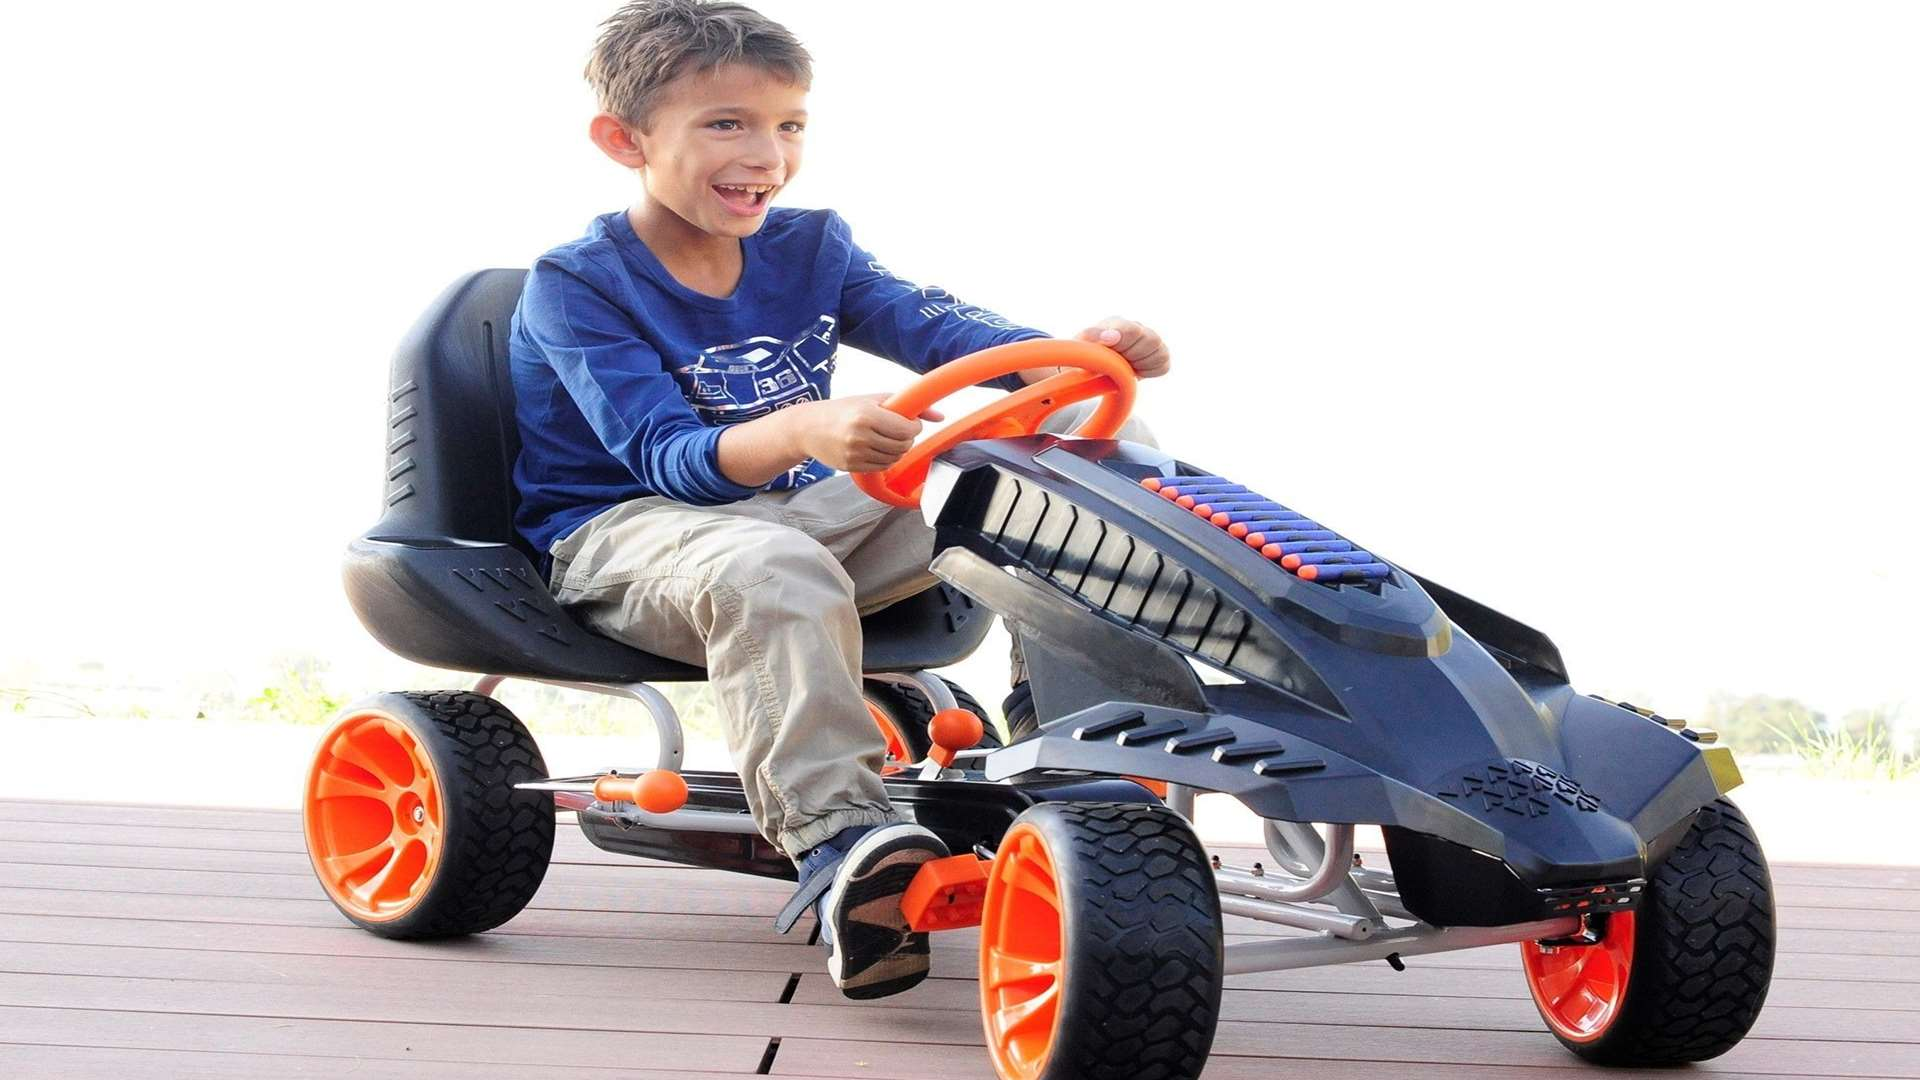 The Nerf Battle Racer go cart